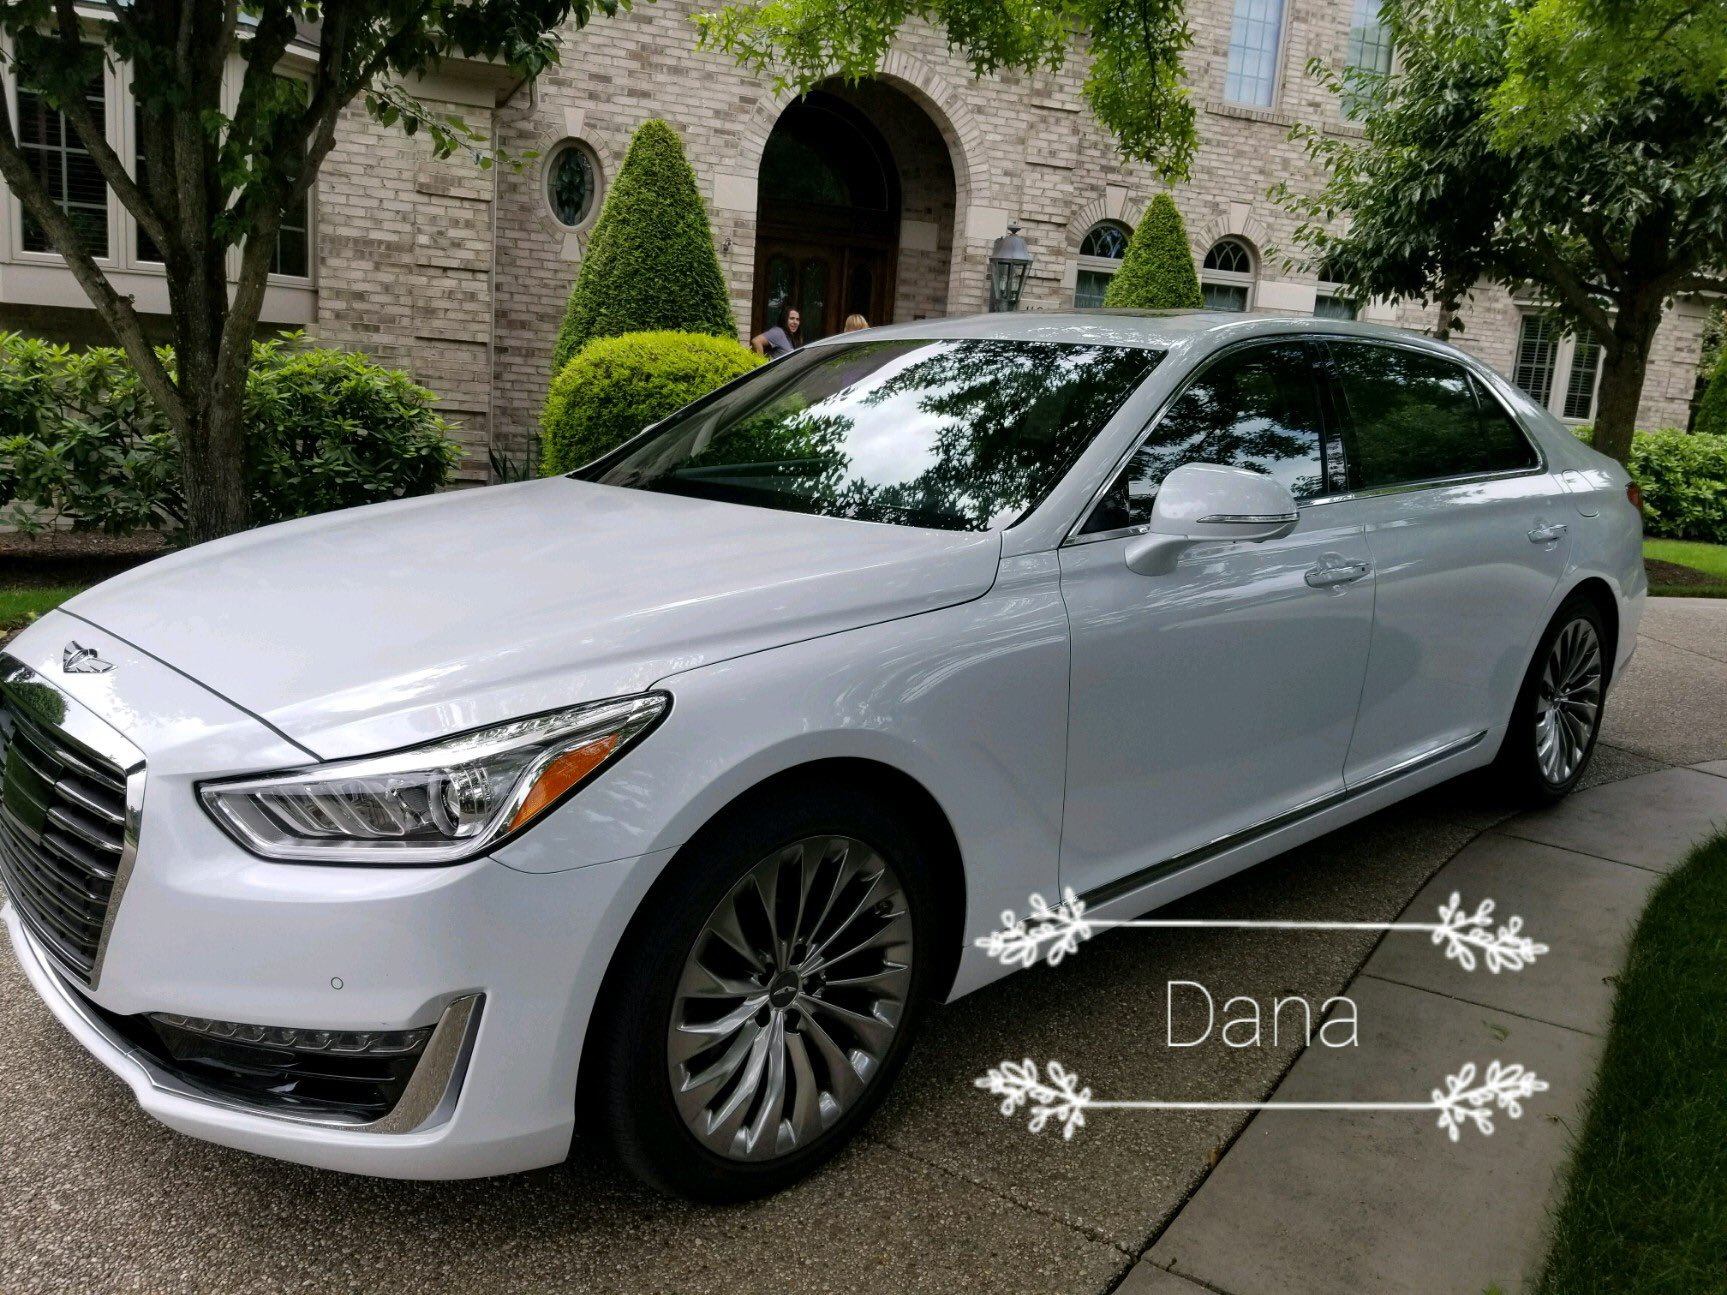 RT @danavento: The @GenesisUSA rides as #sleek & #sexy as it looks - #ad #drivegenesis #Pittsburgh  #G90 https://t.co/UqwNJLAEVZ